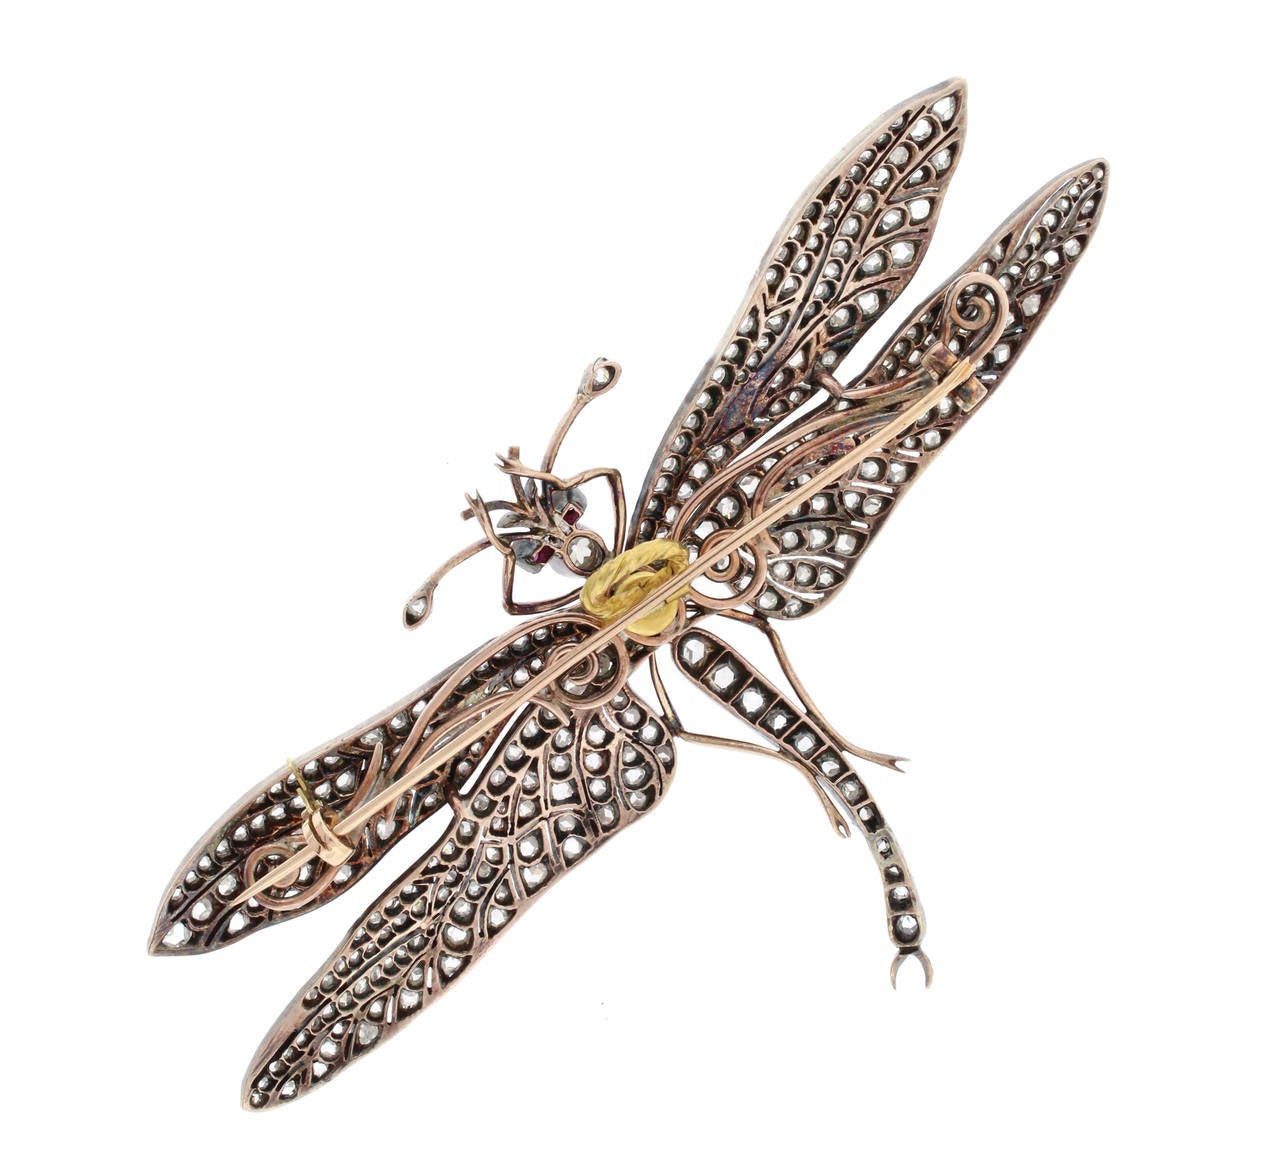 The Victorians had a great interest in nature inspired themes.The dragonfly was know to symbolizes immortality, regeneration and good luck.  Two hundred and eighty rose and old european cut diamonds weighing 6.5 carats are set in silver over gold